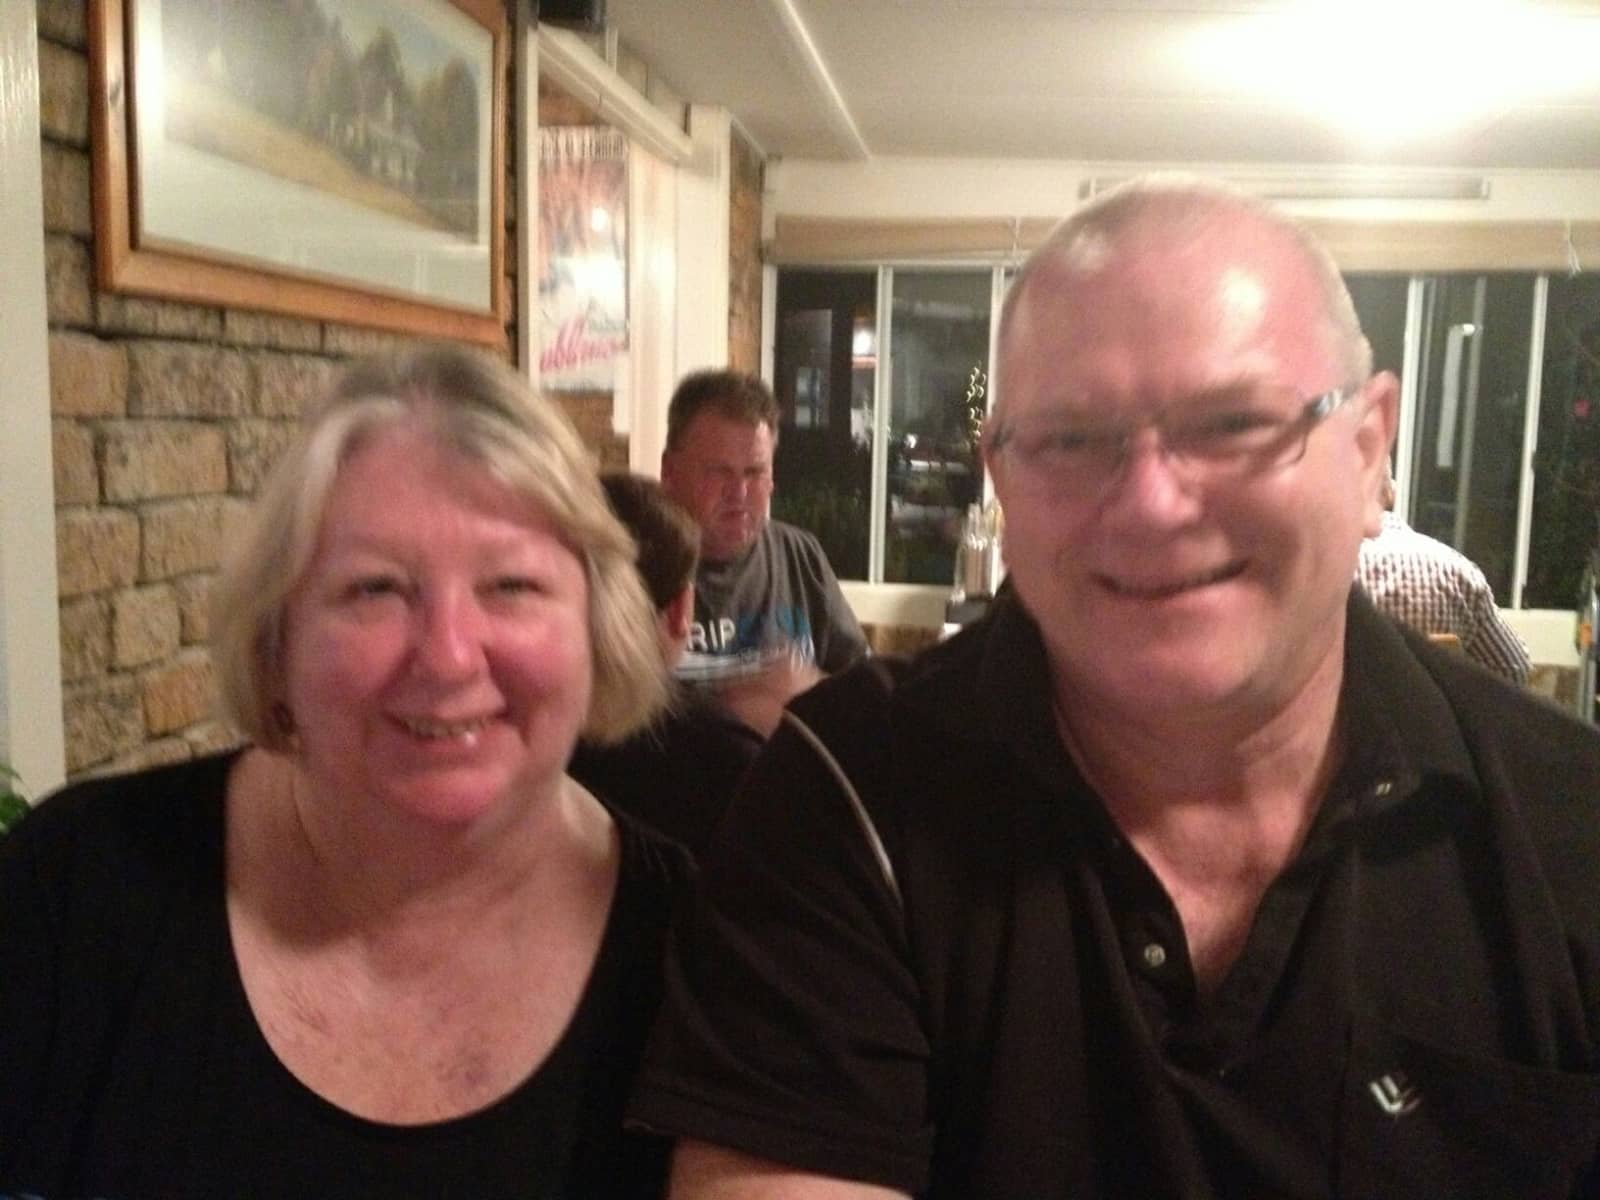 Janet & Steve from Sydney, New South Wales, Australia